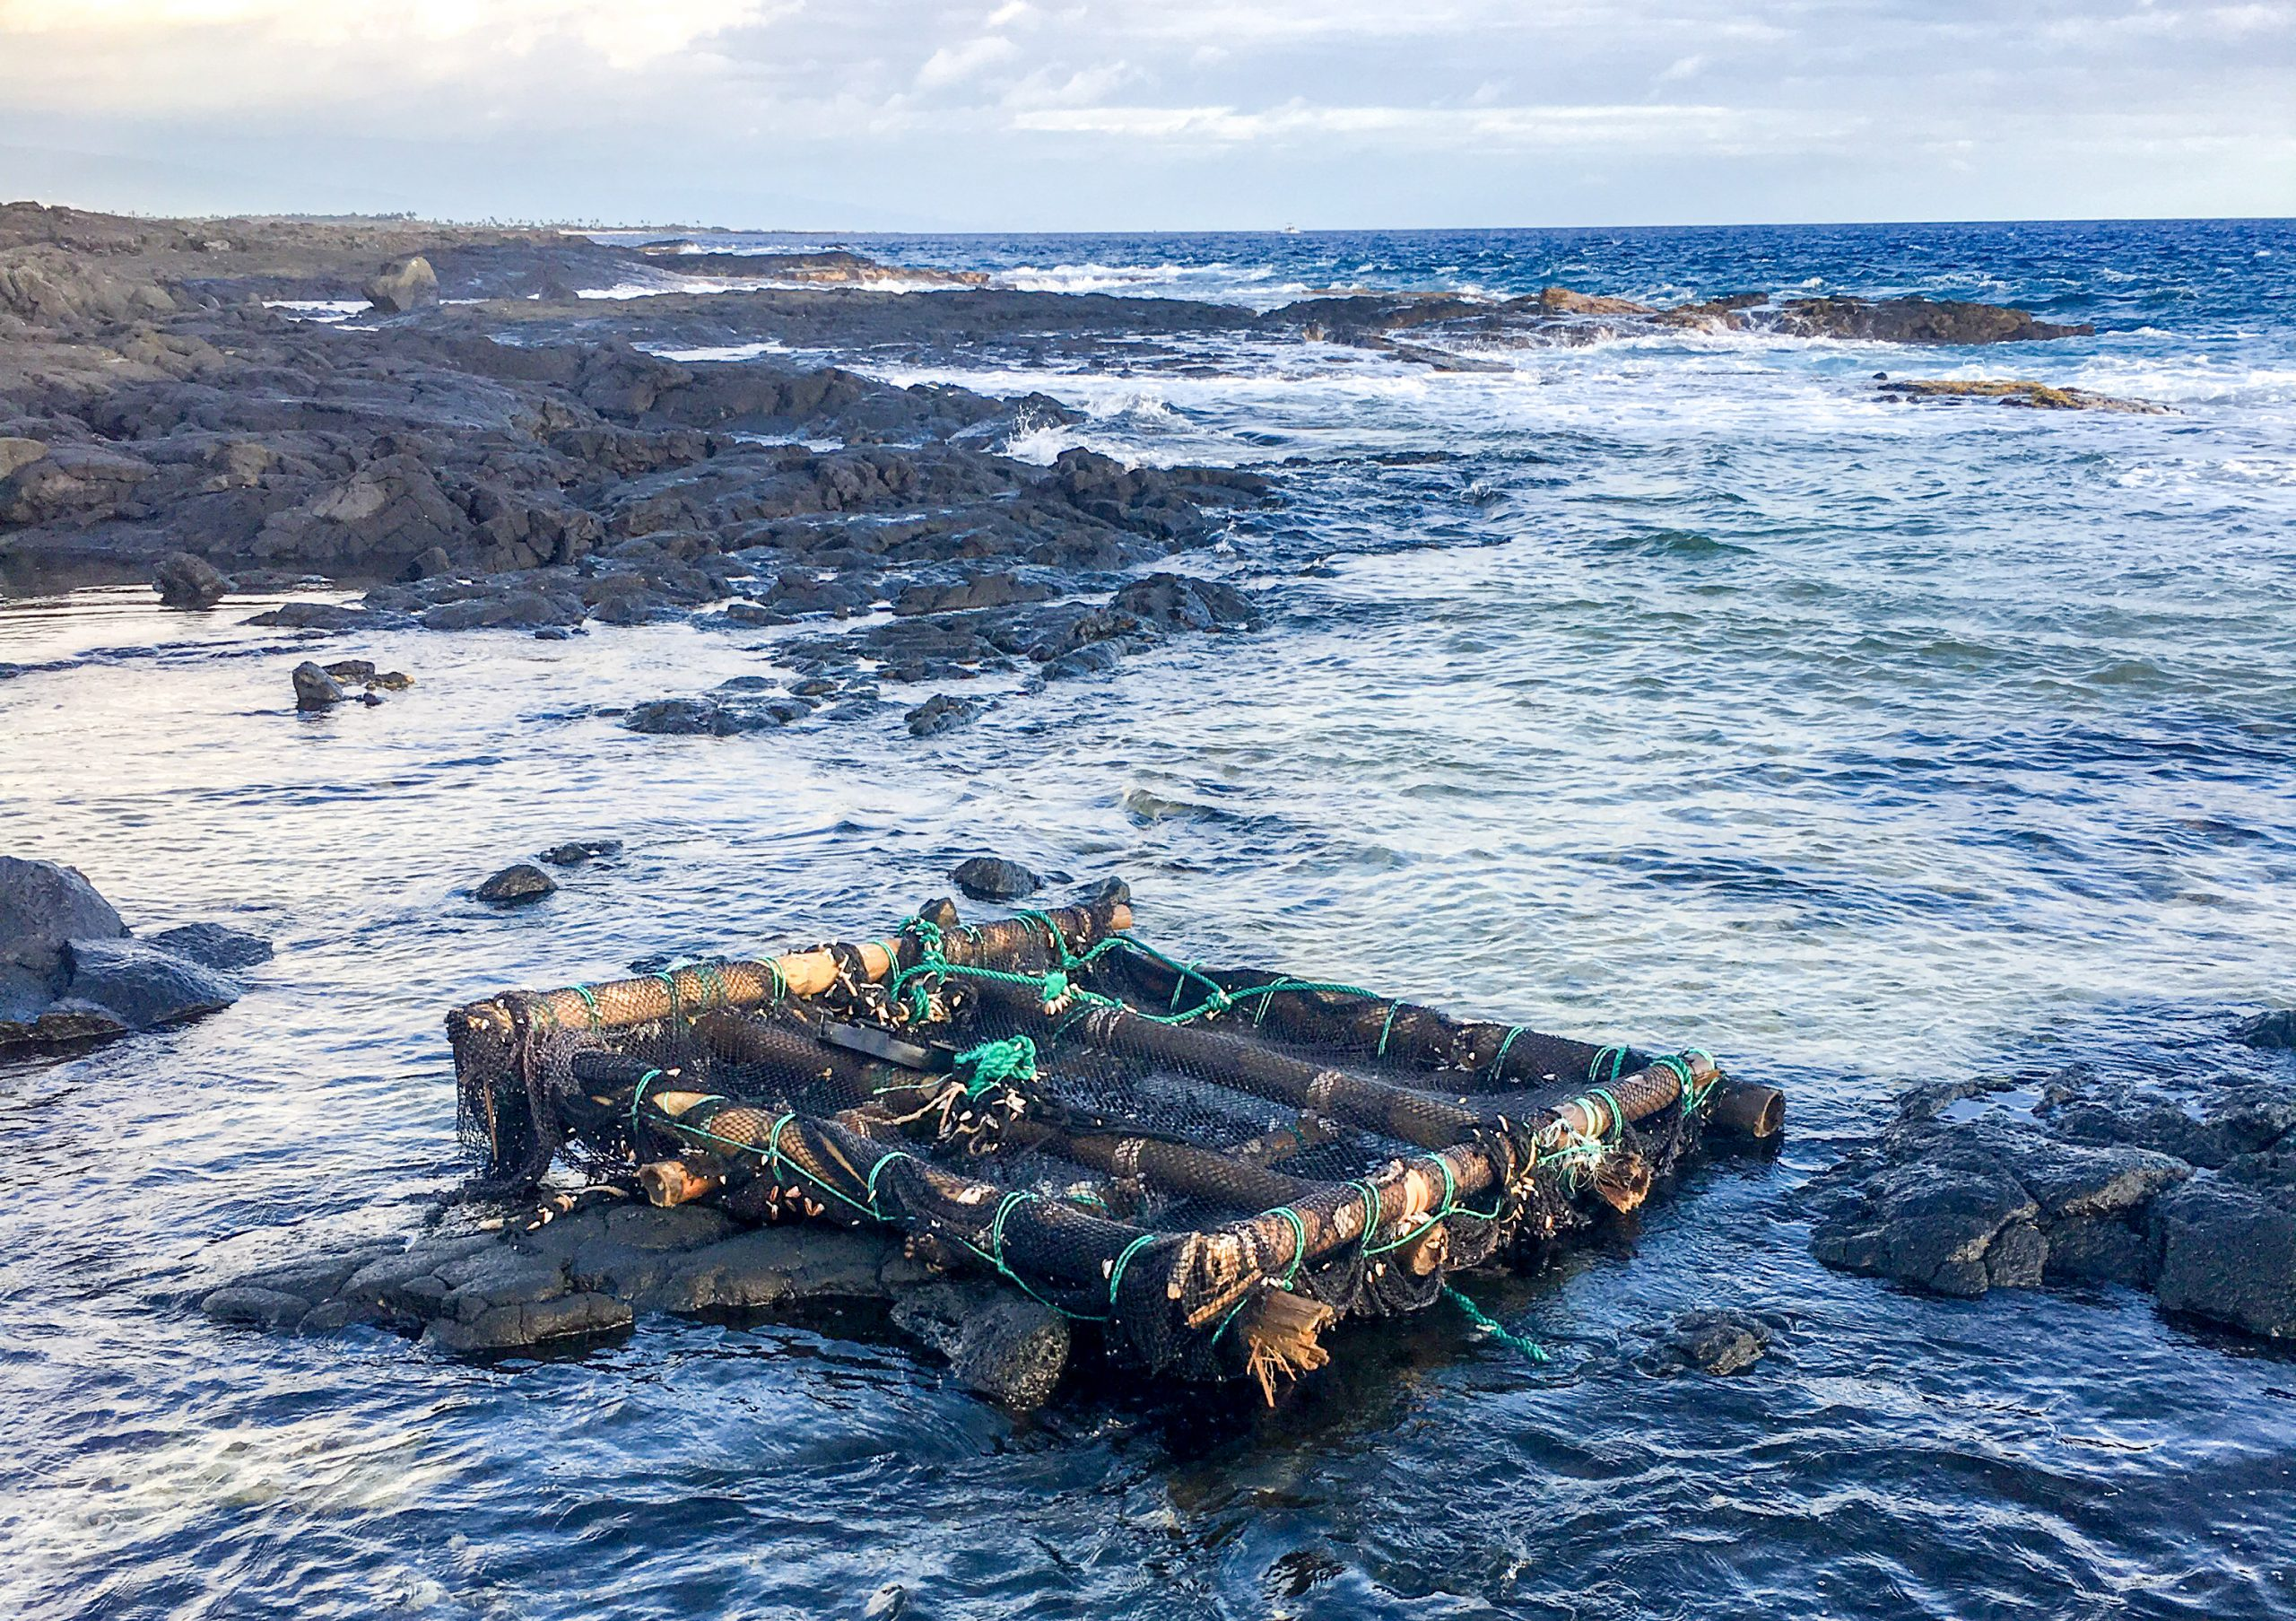 More Fish-Luring FADs Are Adrift, Causing Navigation/Wildlife Issues in Hawai'i Waters